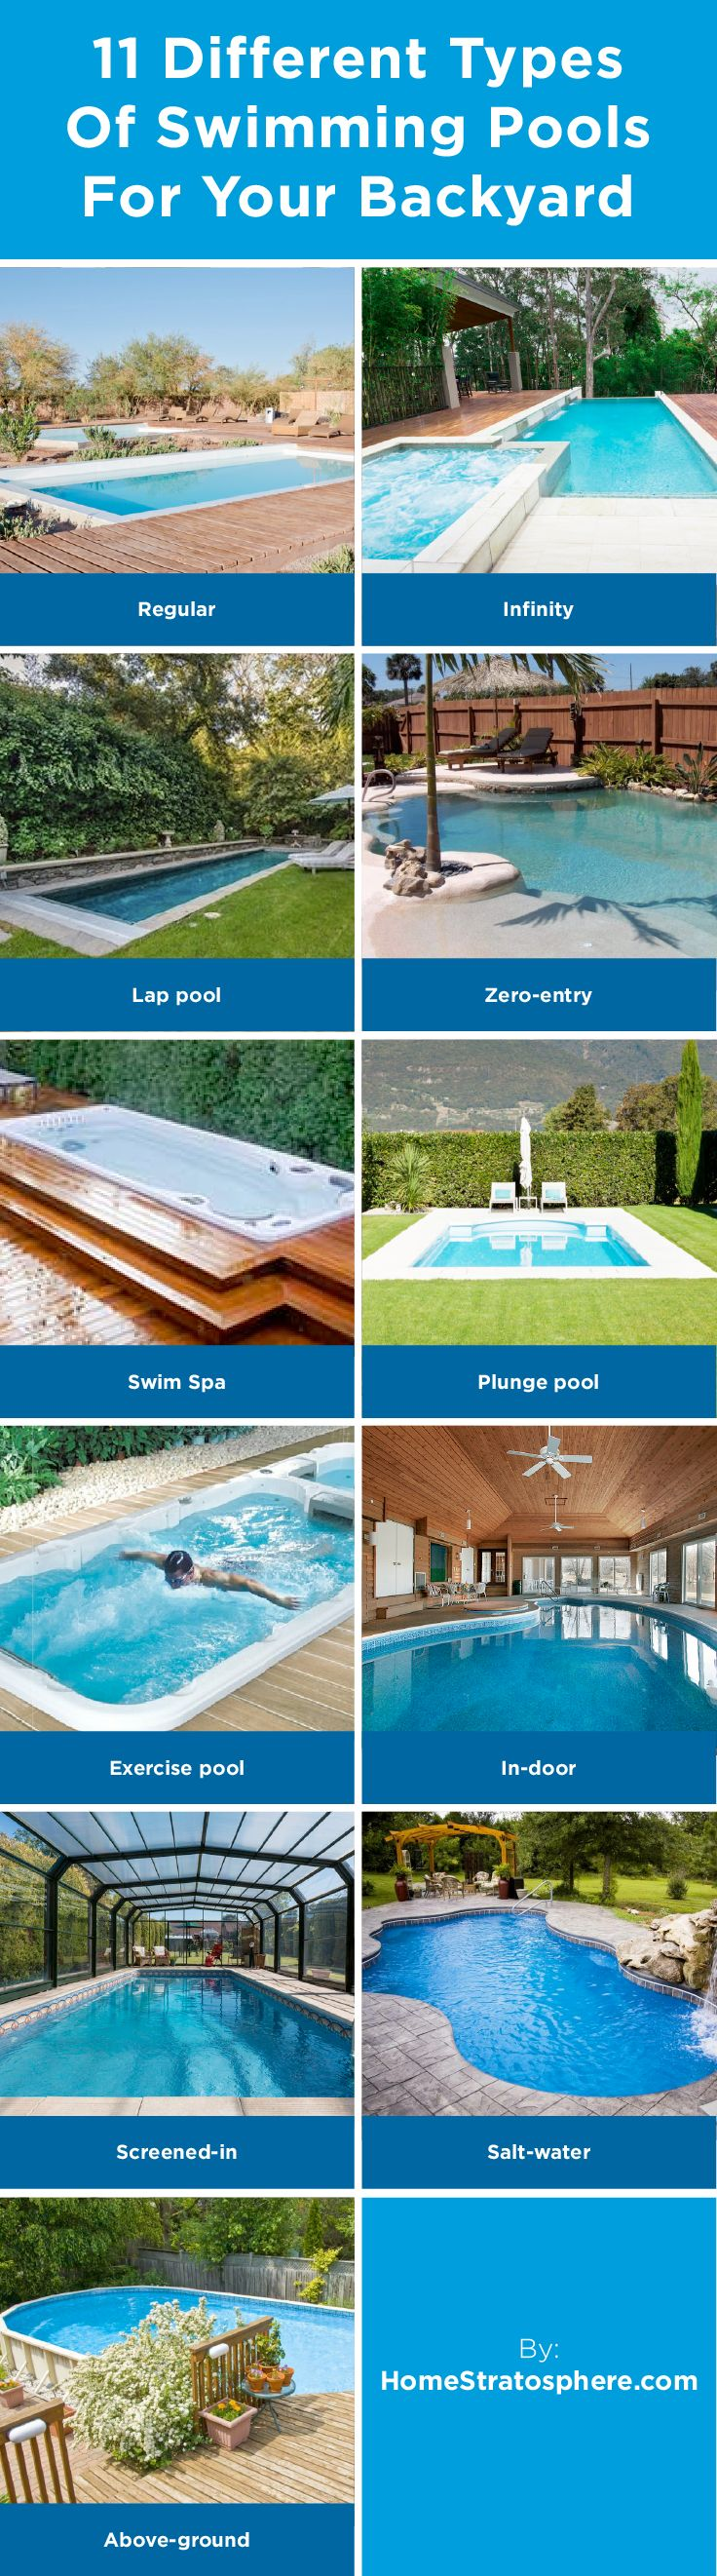 284 best front backyard ideas images on pinterest for Types of swimming pools